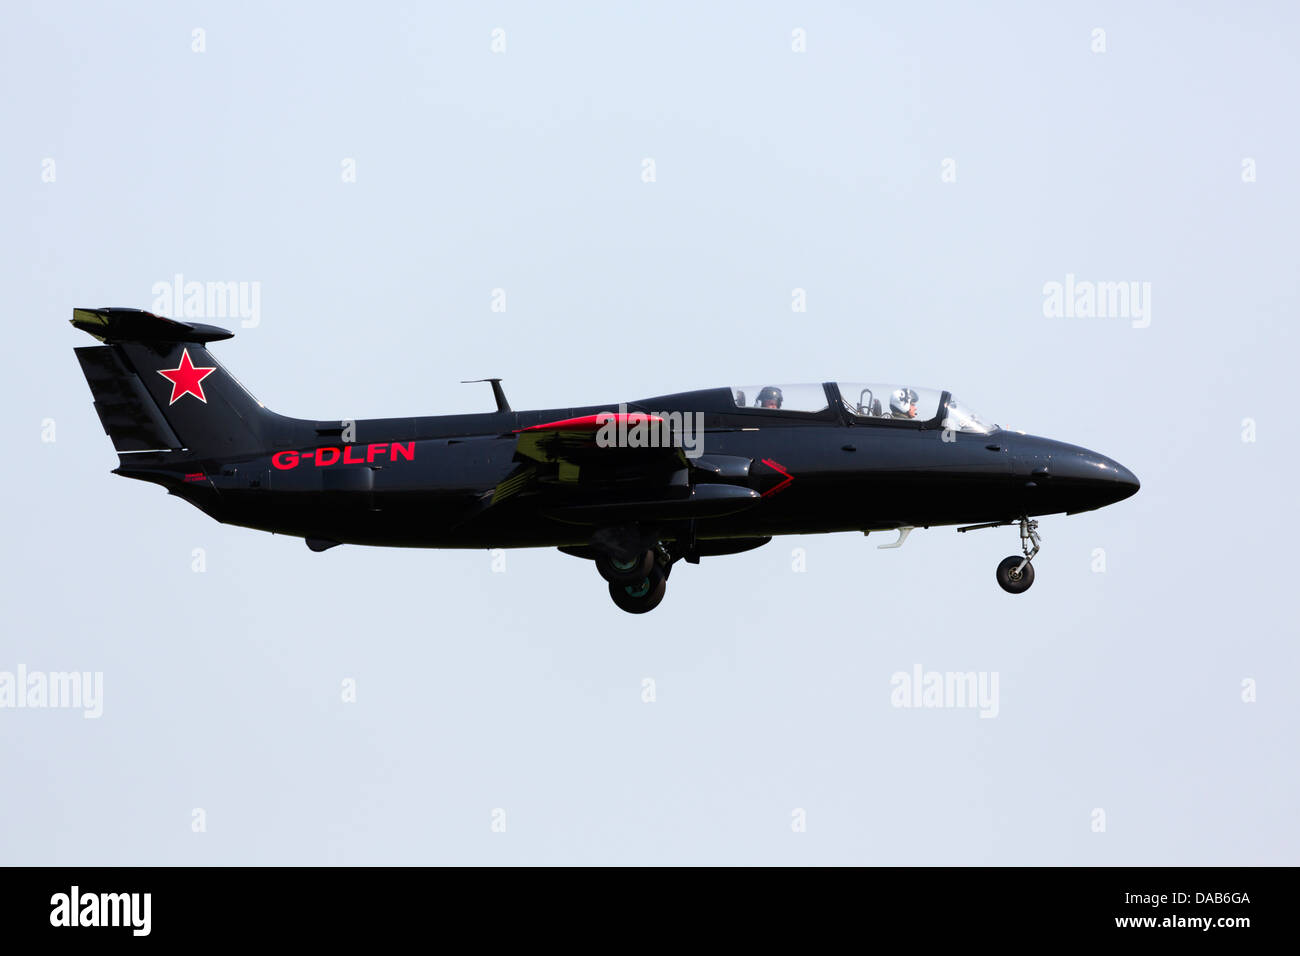 Aero L-29 'Delfin' privately owned soviet jet trainer. RAF Waddington Airshow 2013 - Stock Image